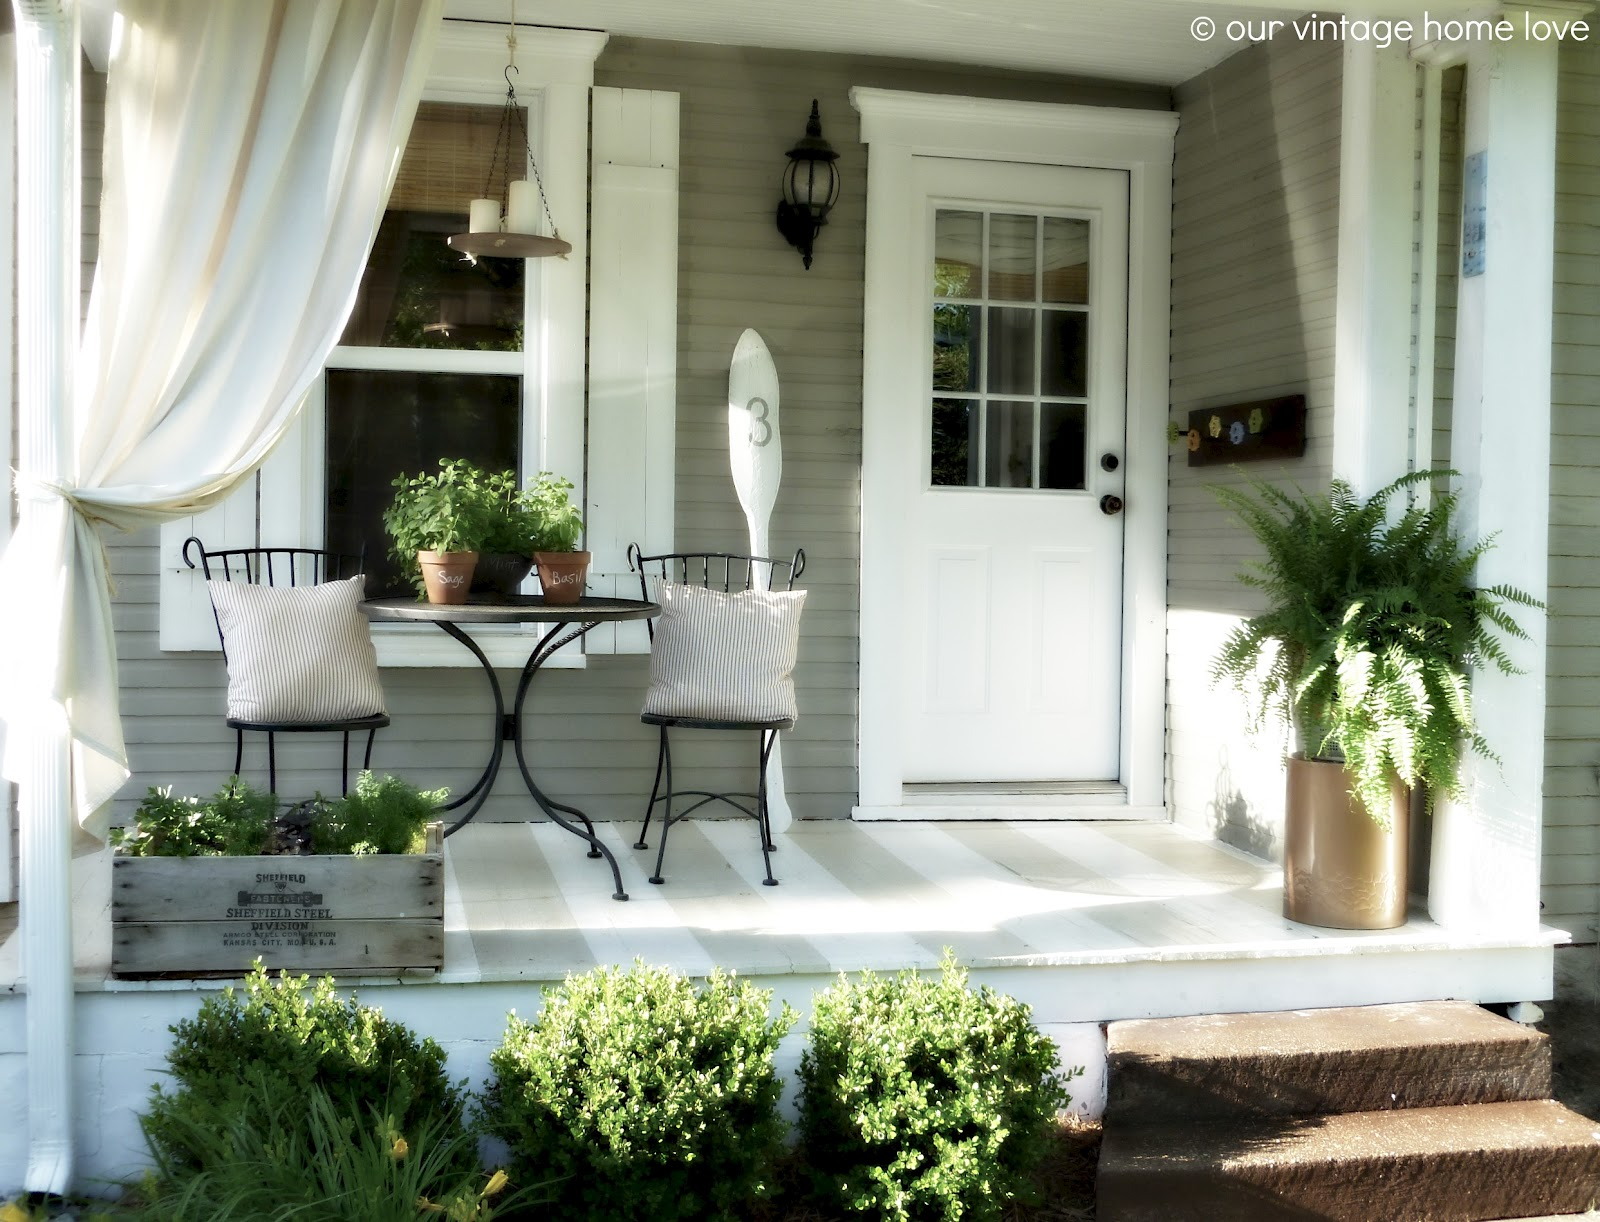 Vintage home love back side porch ideas for summer and an for Small outdoor porch ideas